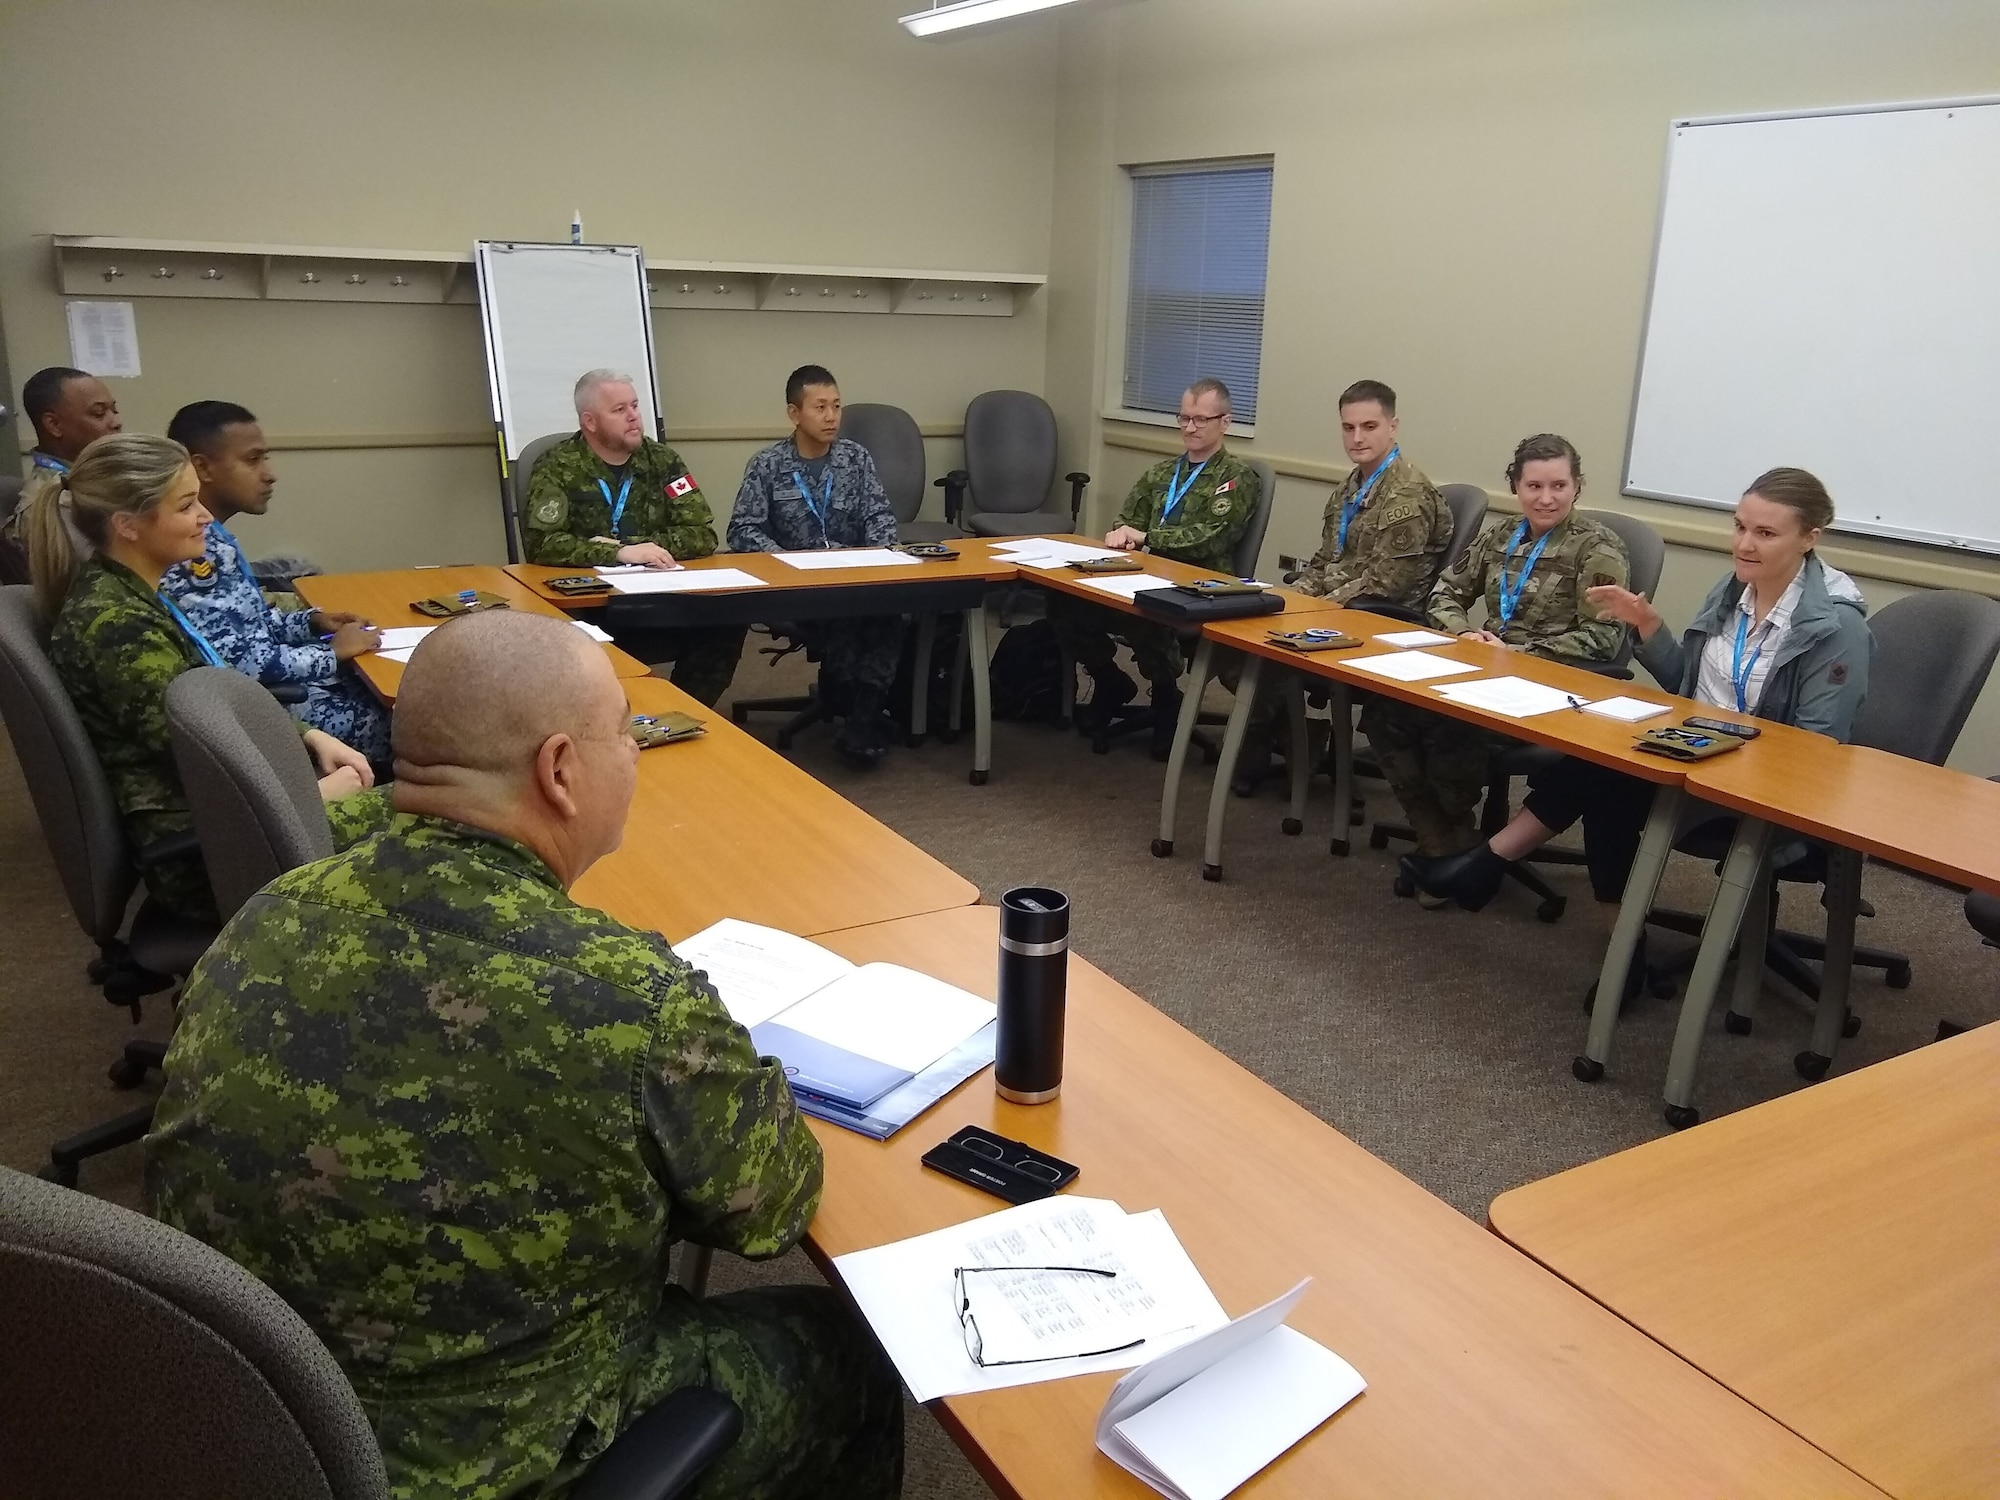 Pacific Air Forces Airmen participate in a group activity during the Junior Enlisted Leadership Forum at the 17 Wing, Winnipeg, Canada, Oct. 21 – 25, 2019. Discussion topics included resiliency, culture, ethics, and the complexity of the geopolitical environment. (Courtesy photo)